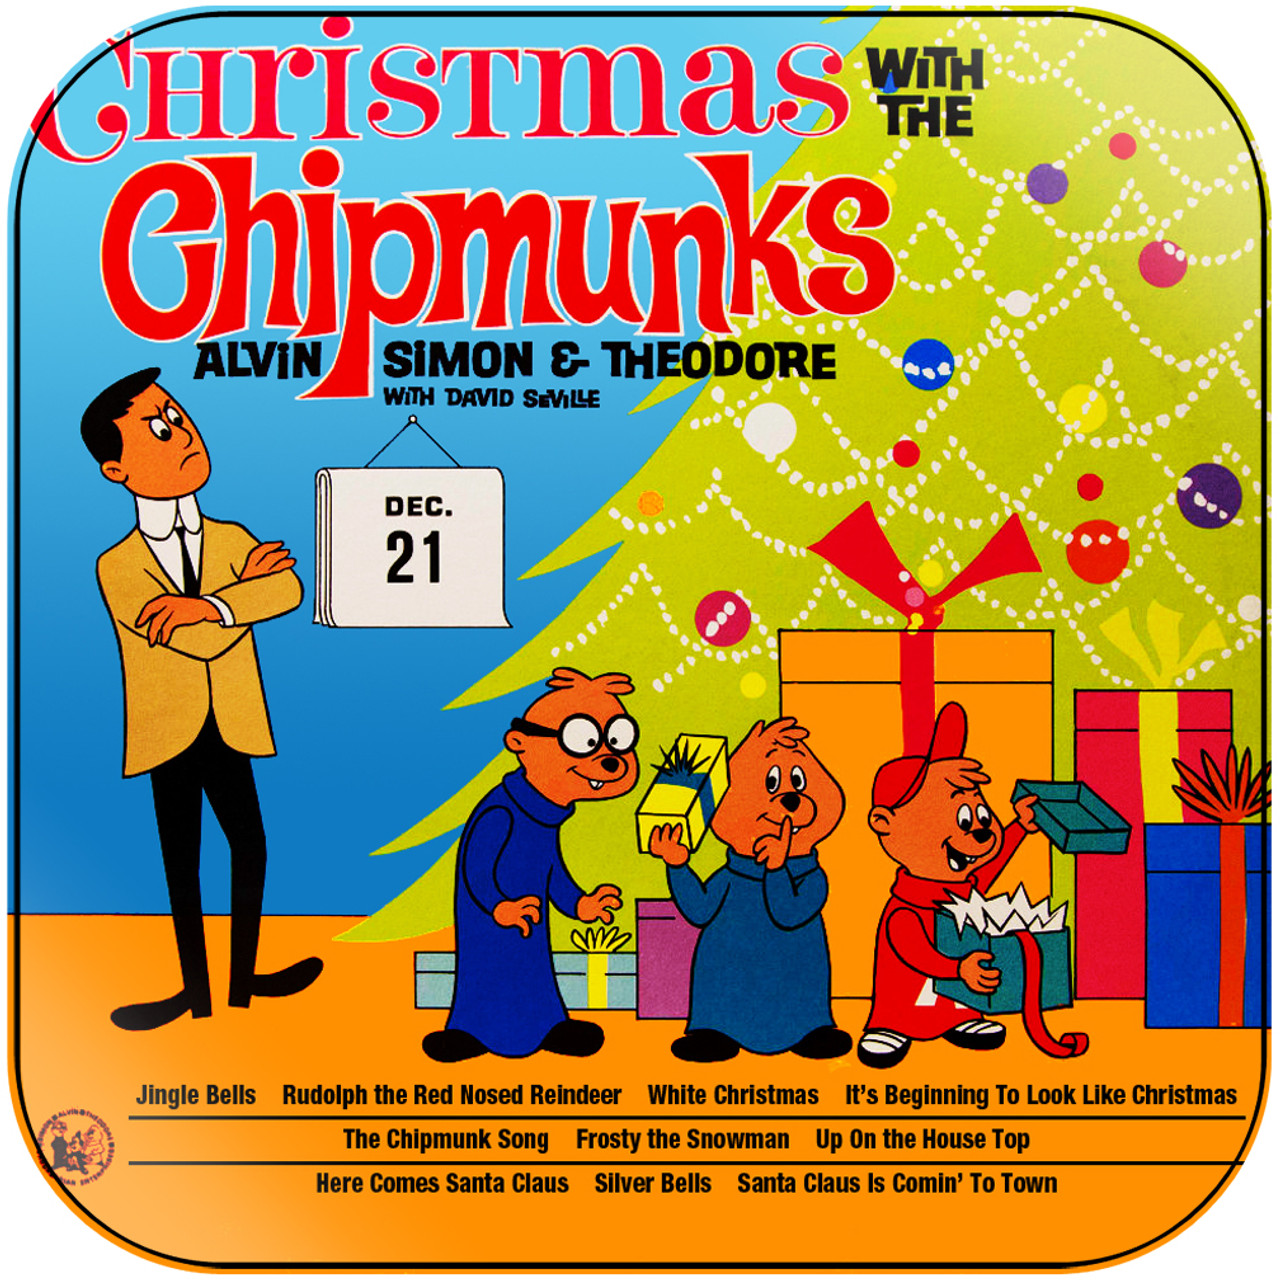 Alvin And The Chipmunks Christmas.The Chipmunks Christmas With The Chipmunks 2 Album Cover Sticker Album Cover Sticker